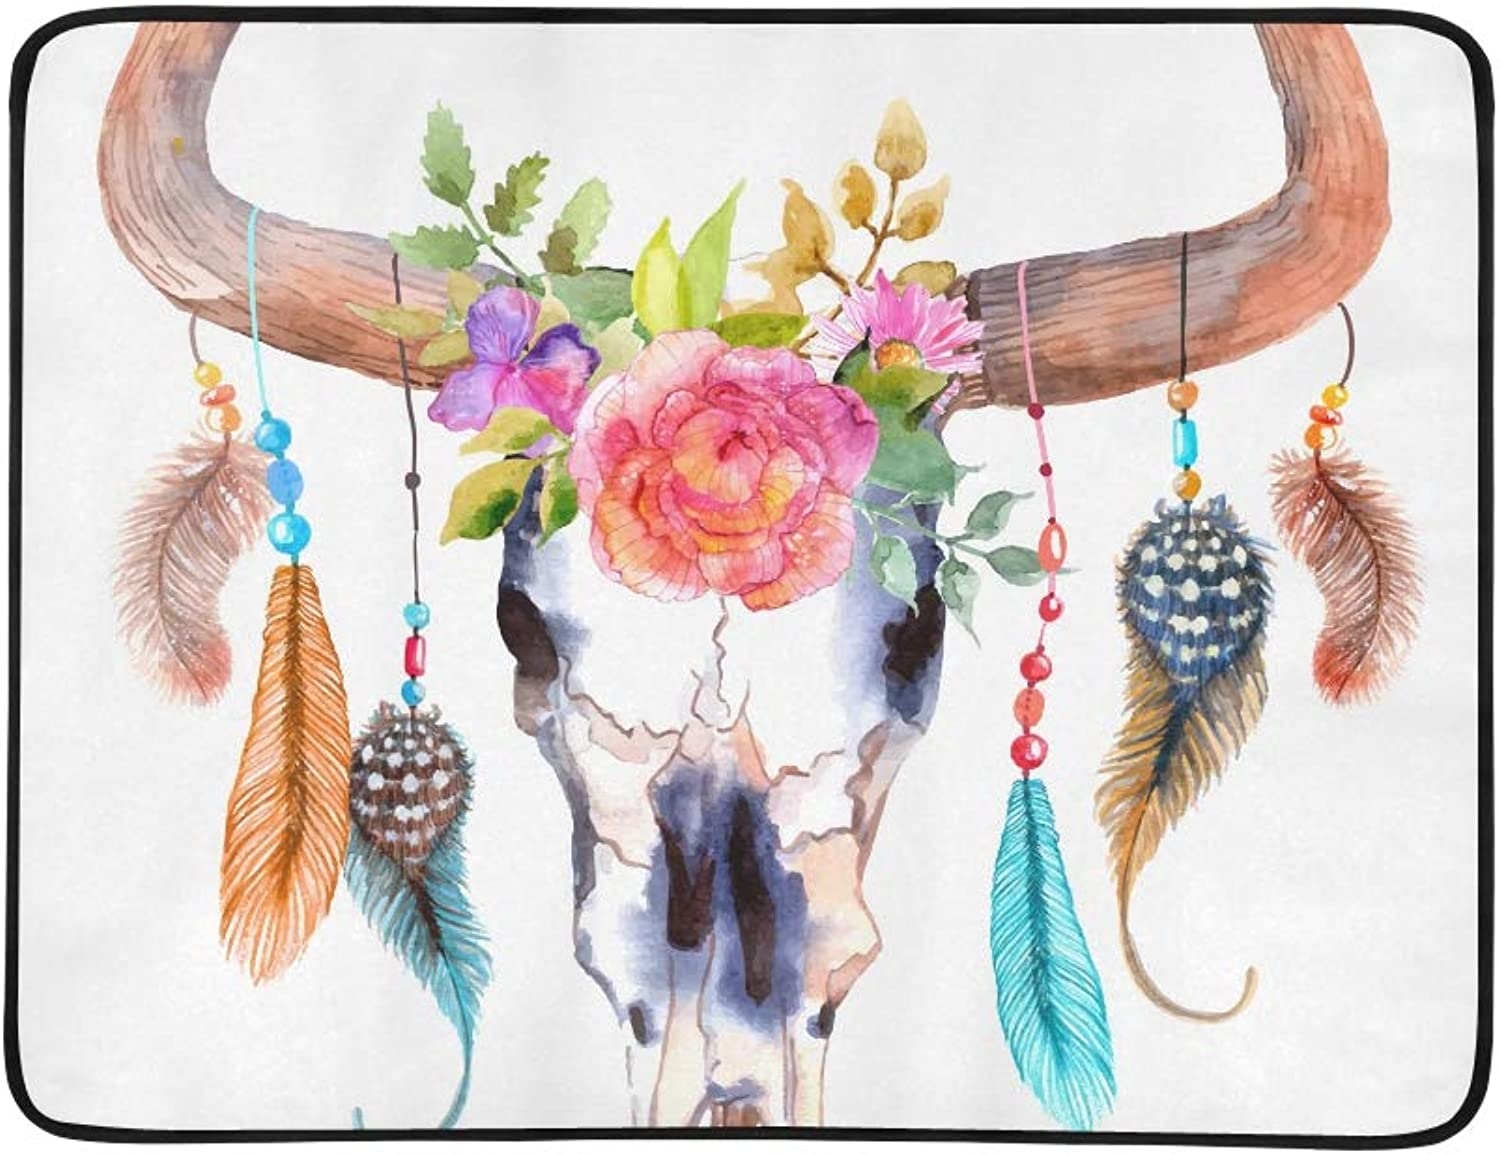 Watercolor Bull Skull with Flowers and Feathers V Pattern Portable and Foldable Blanket Mat 60x78 Inch Handy Mat for Camping Picnic Beach Indoor Outdoor Travel